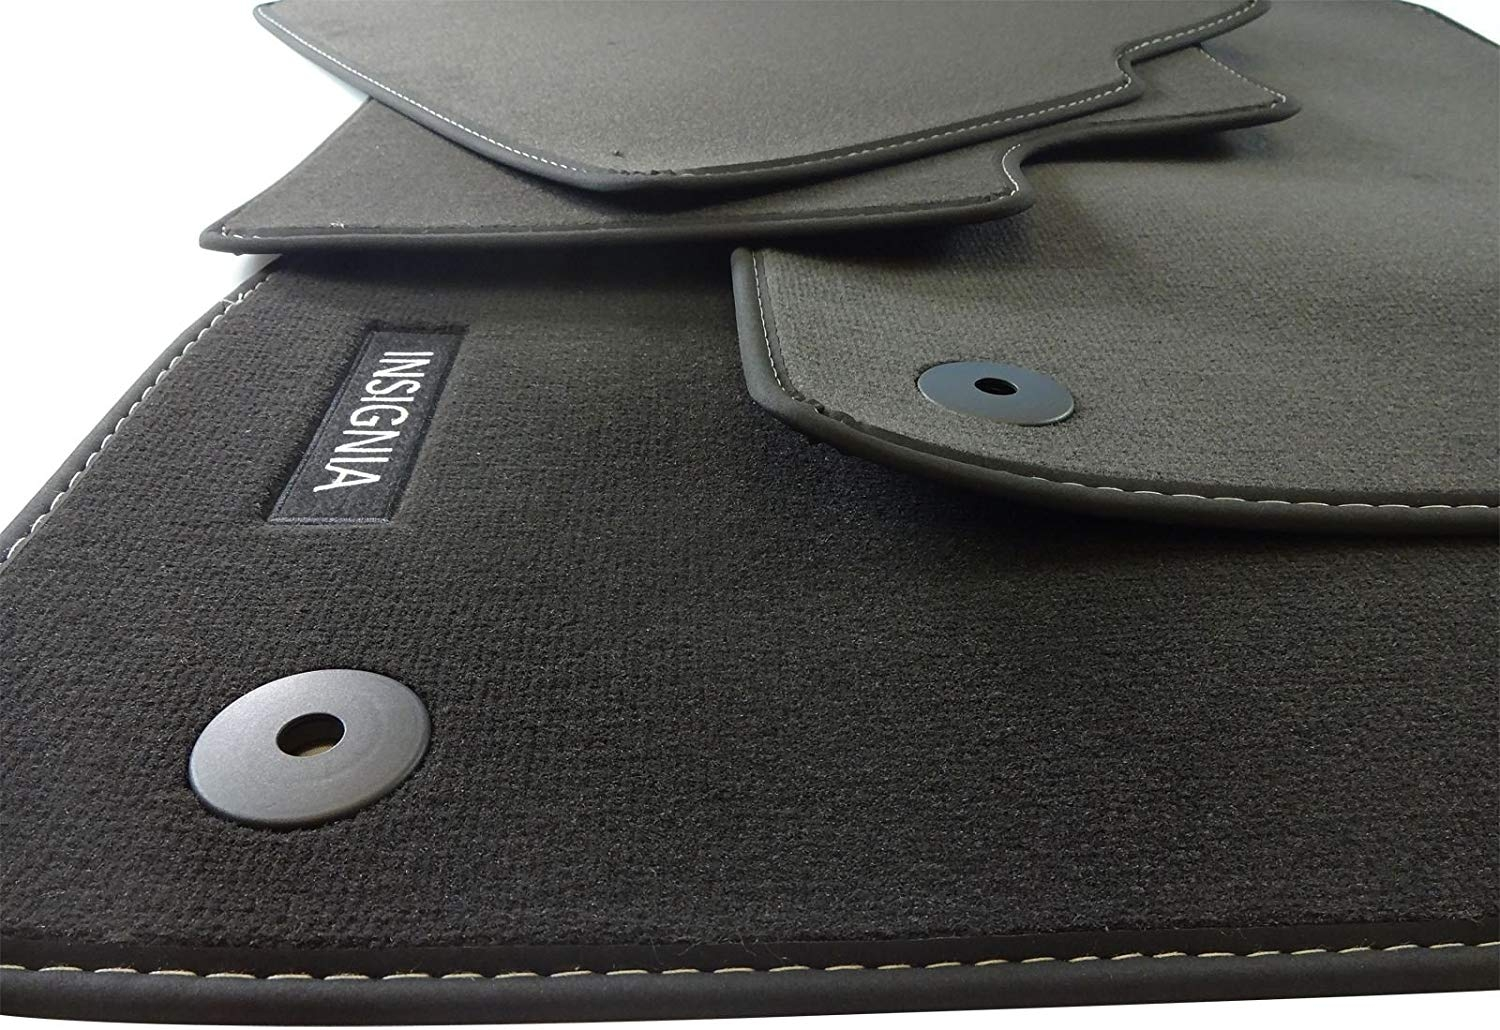 HEAVY DUTY BOOT LINER COVER PROTECTOR MAT FOR VAUXHALL INSIGNIA VX LINE 09-